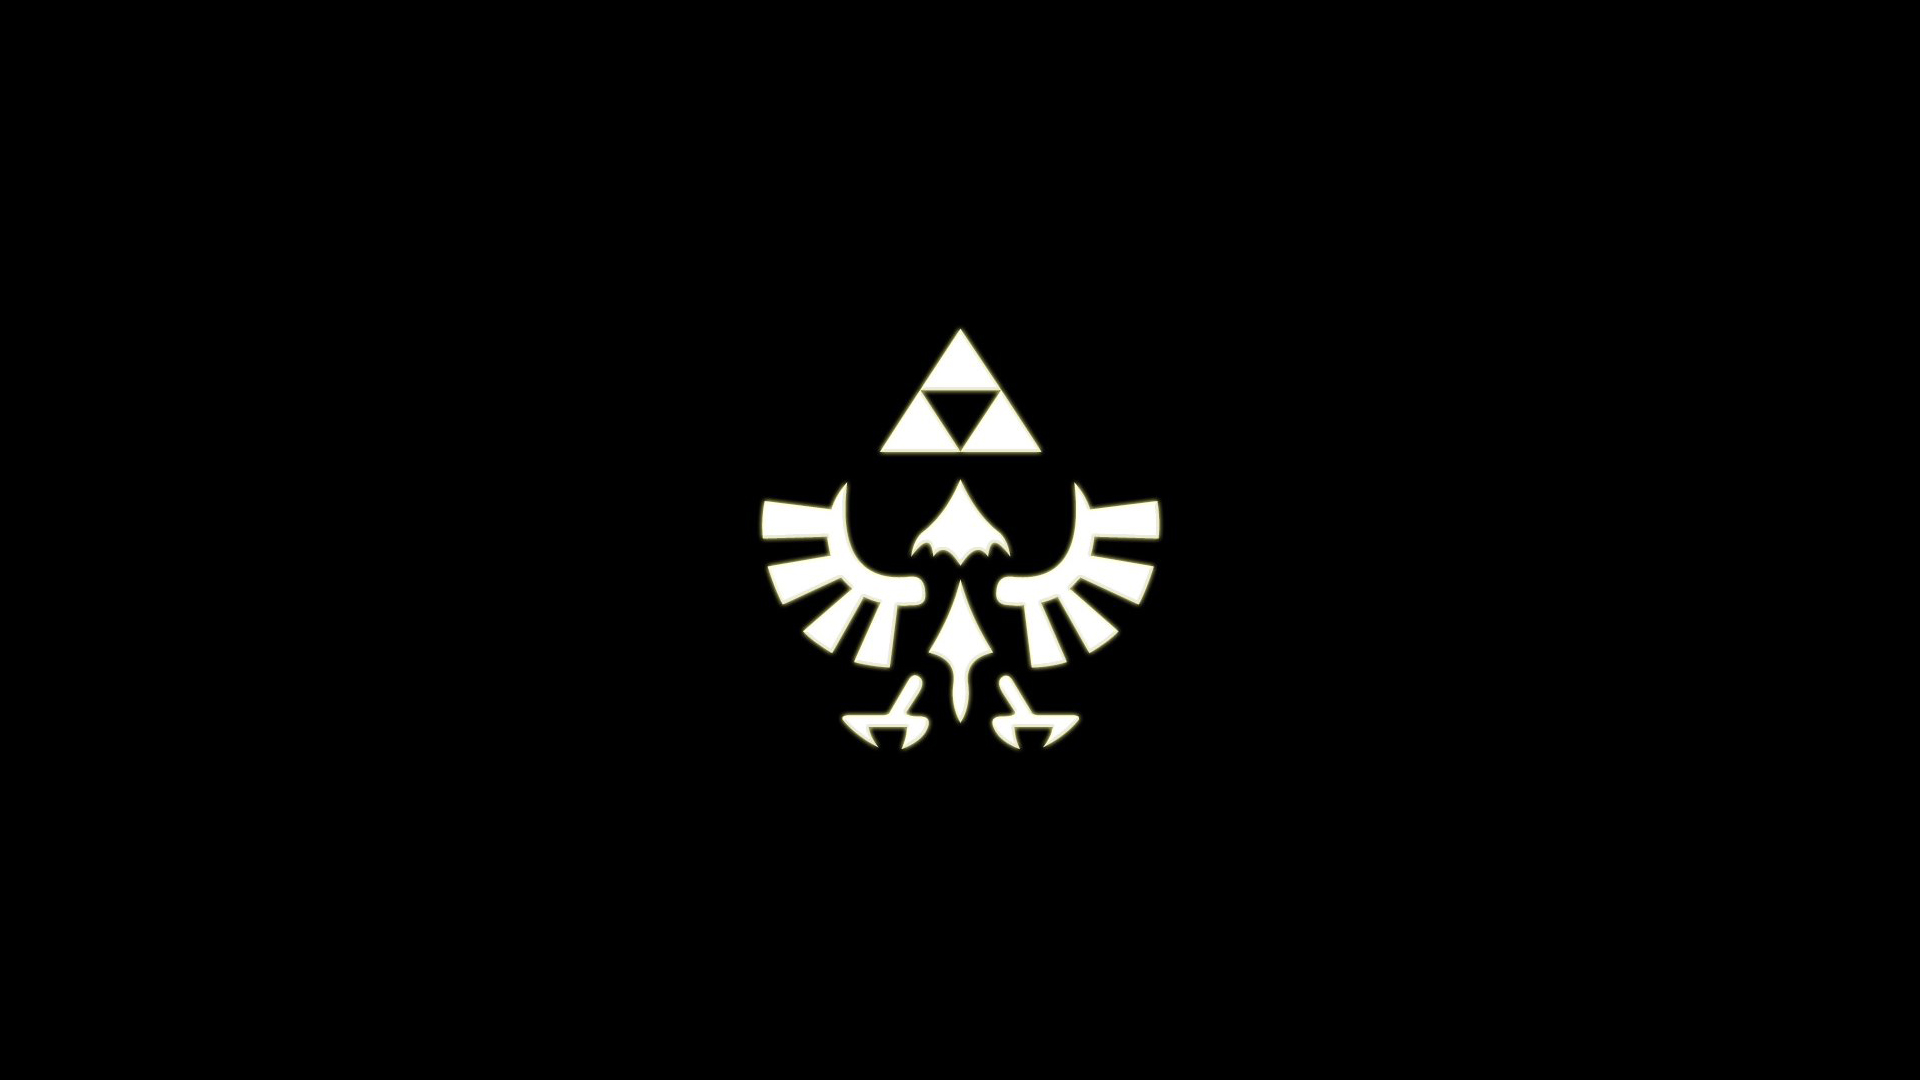 Game Over Iphone 4 Wallpapers Free 640x960 Hd Ipod Touch: Legend Of Zelda IPhone Wallpaper